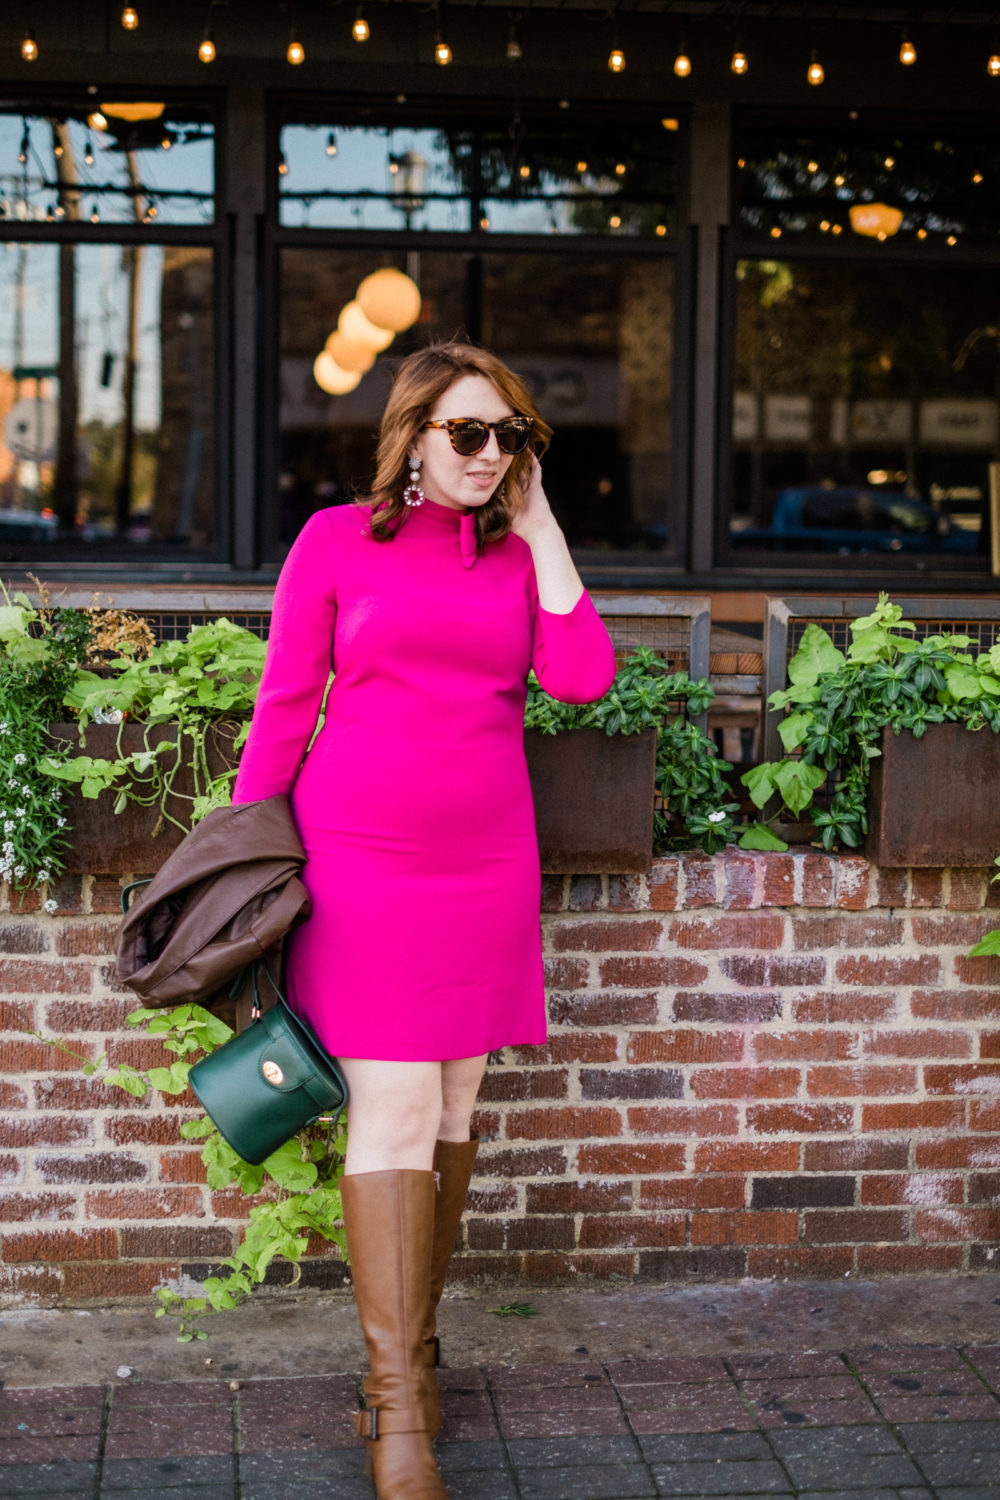 What to Wear to an Office Holiday Party | What to Wear to an After-Work Holiday Party | Casual Holiday Attire via Dallas fashion blogger Glitter & Spice